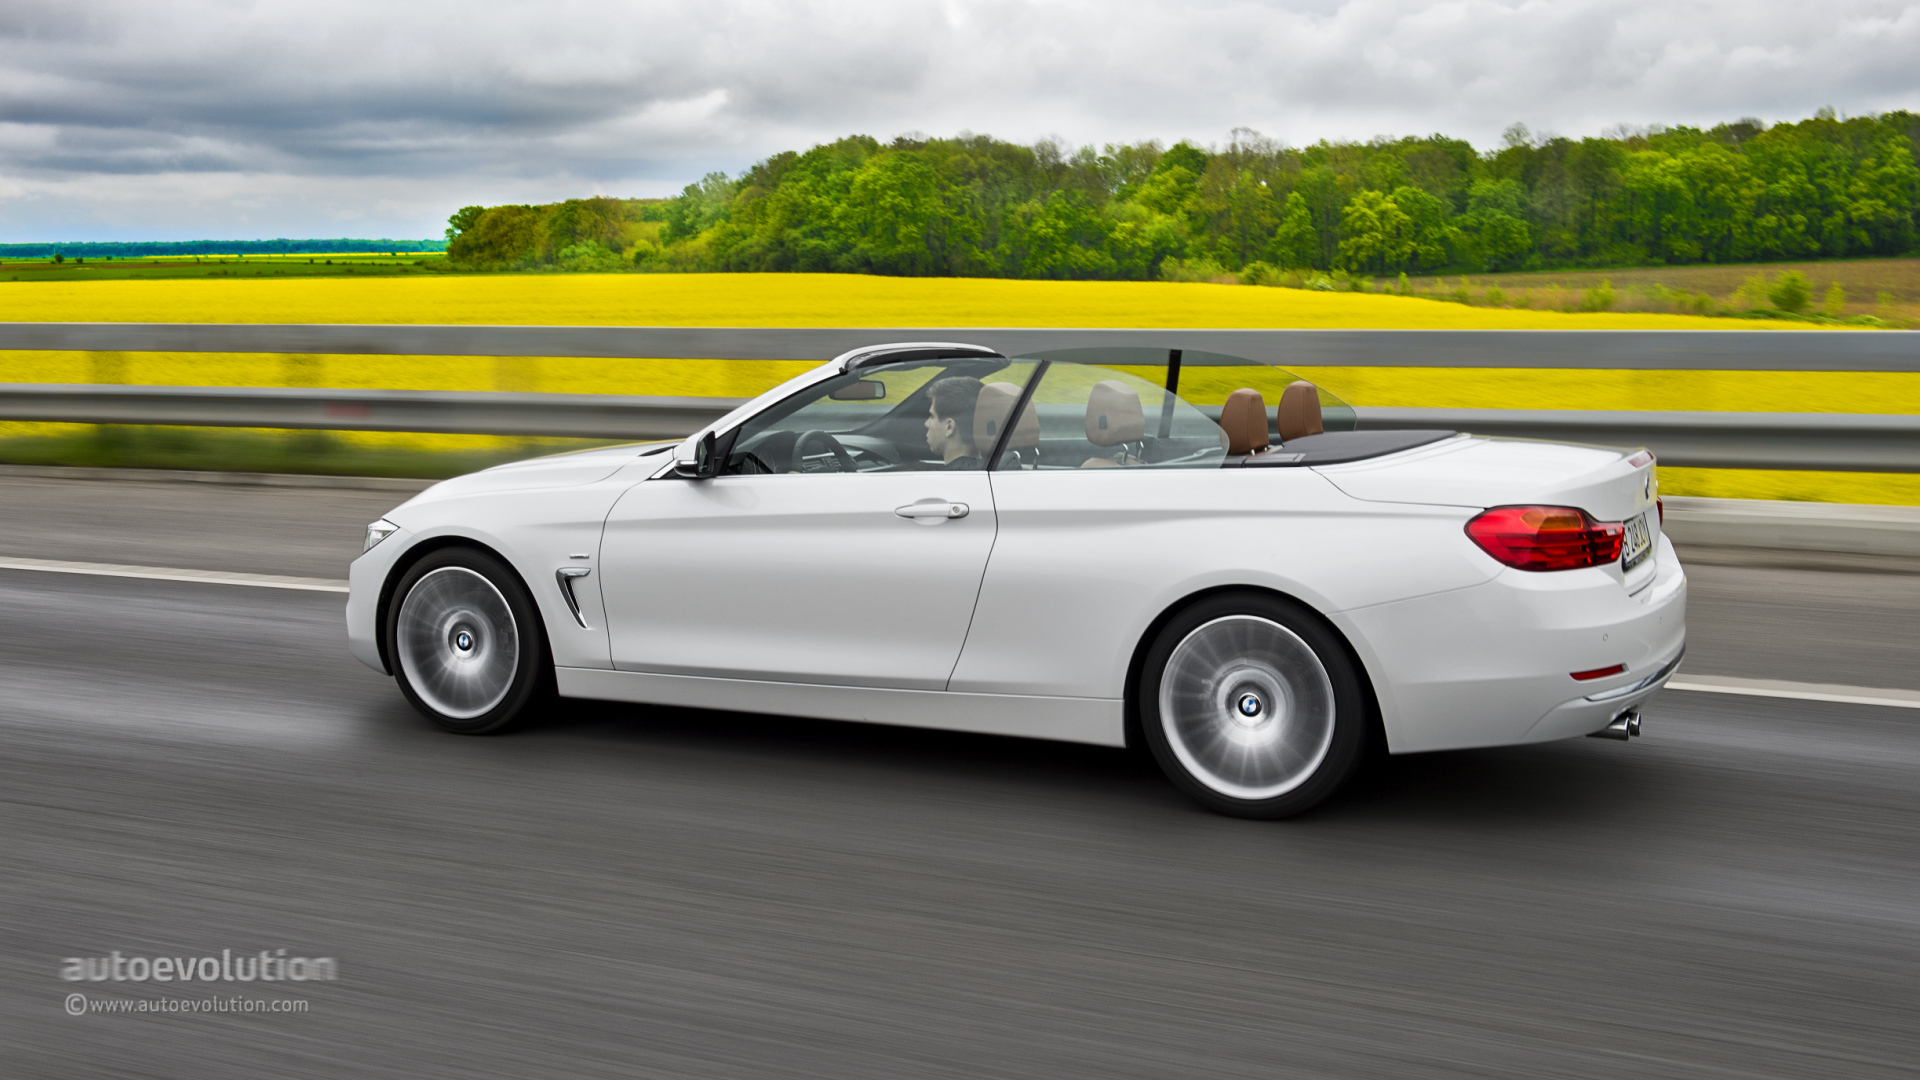 BMW 4 Series Convertible Wallpapers autoevolution